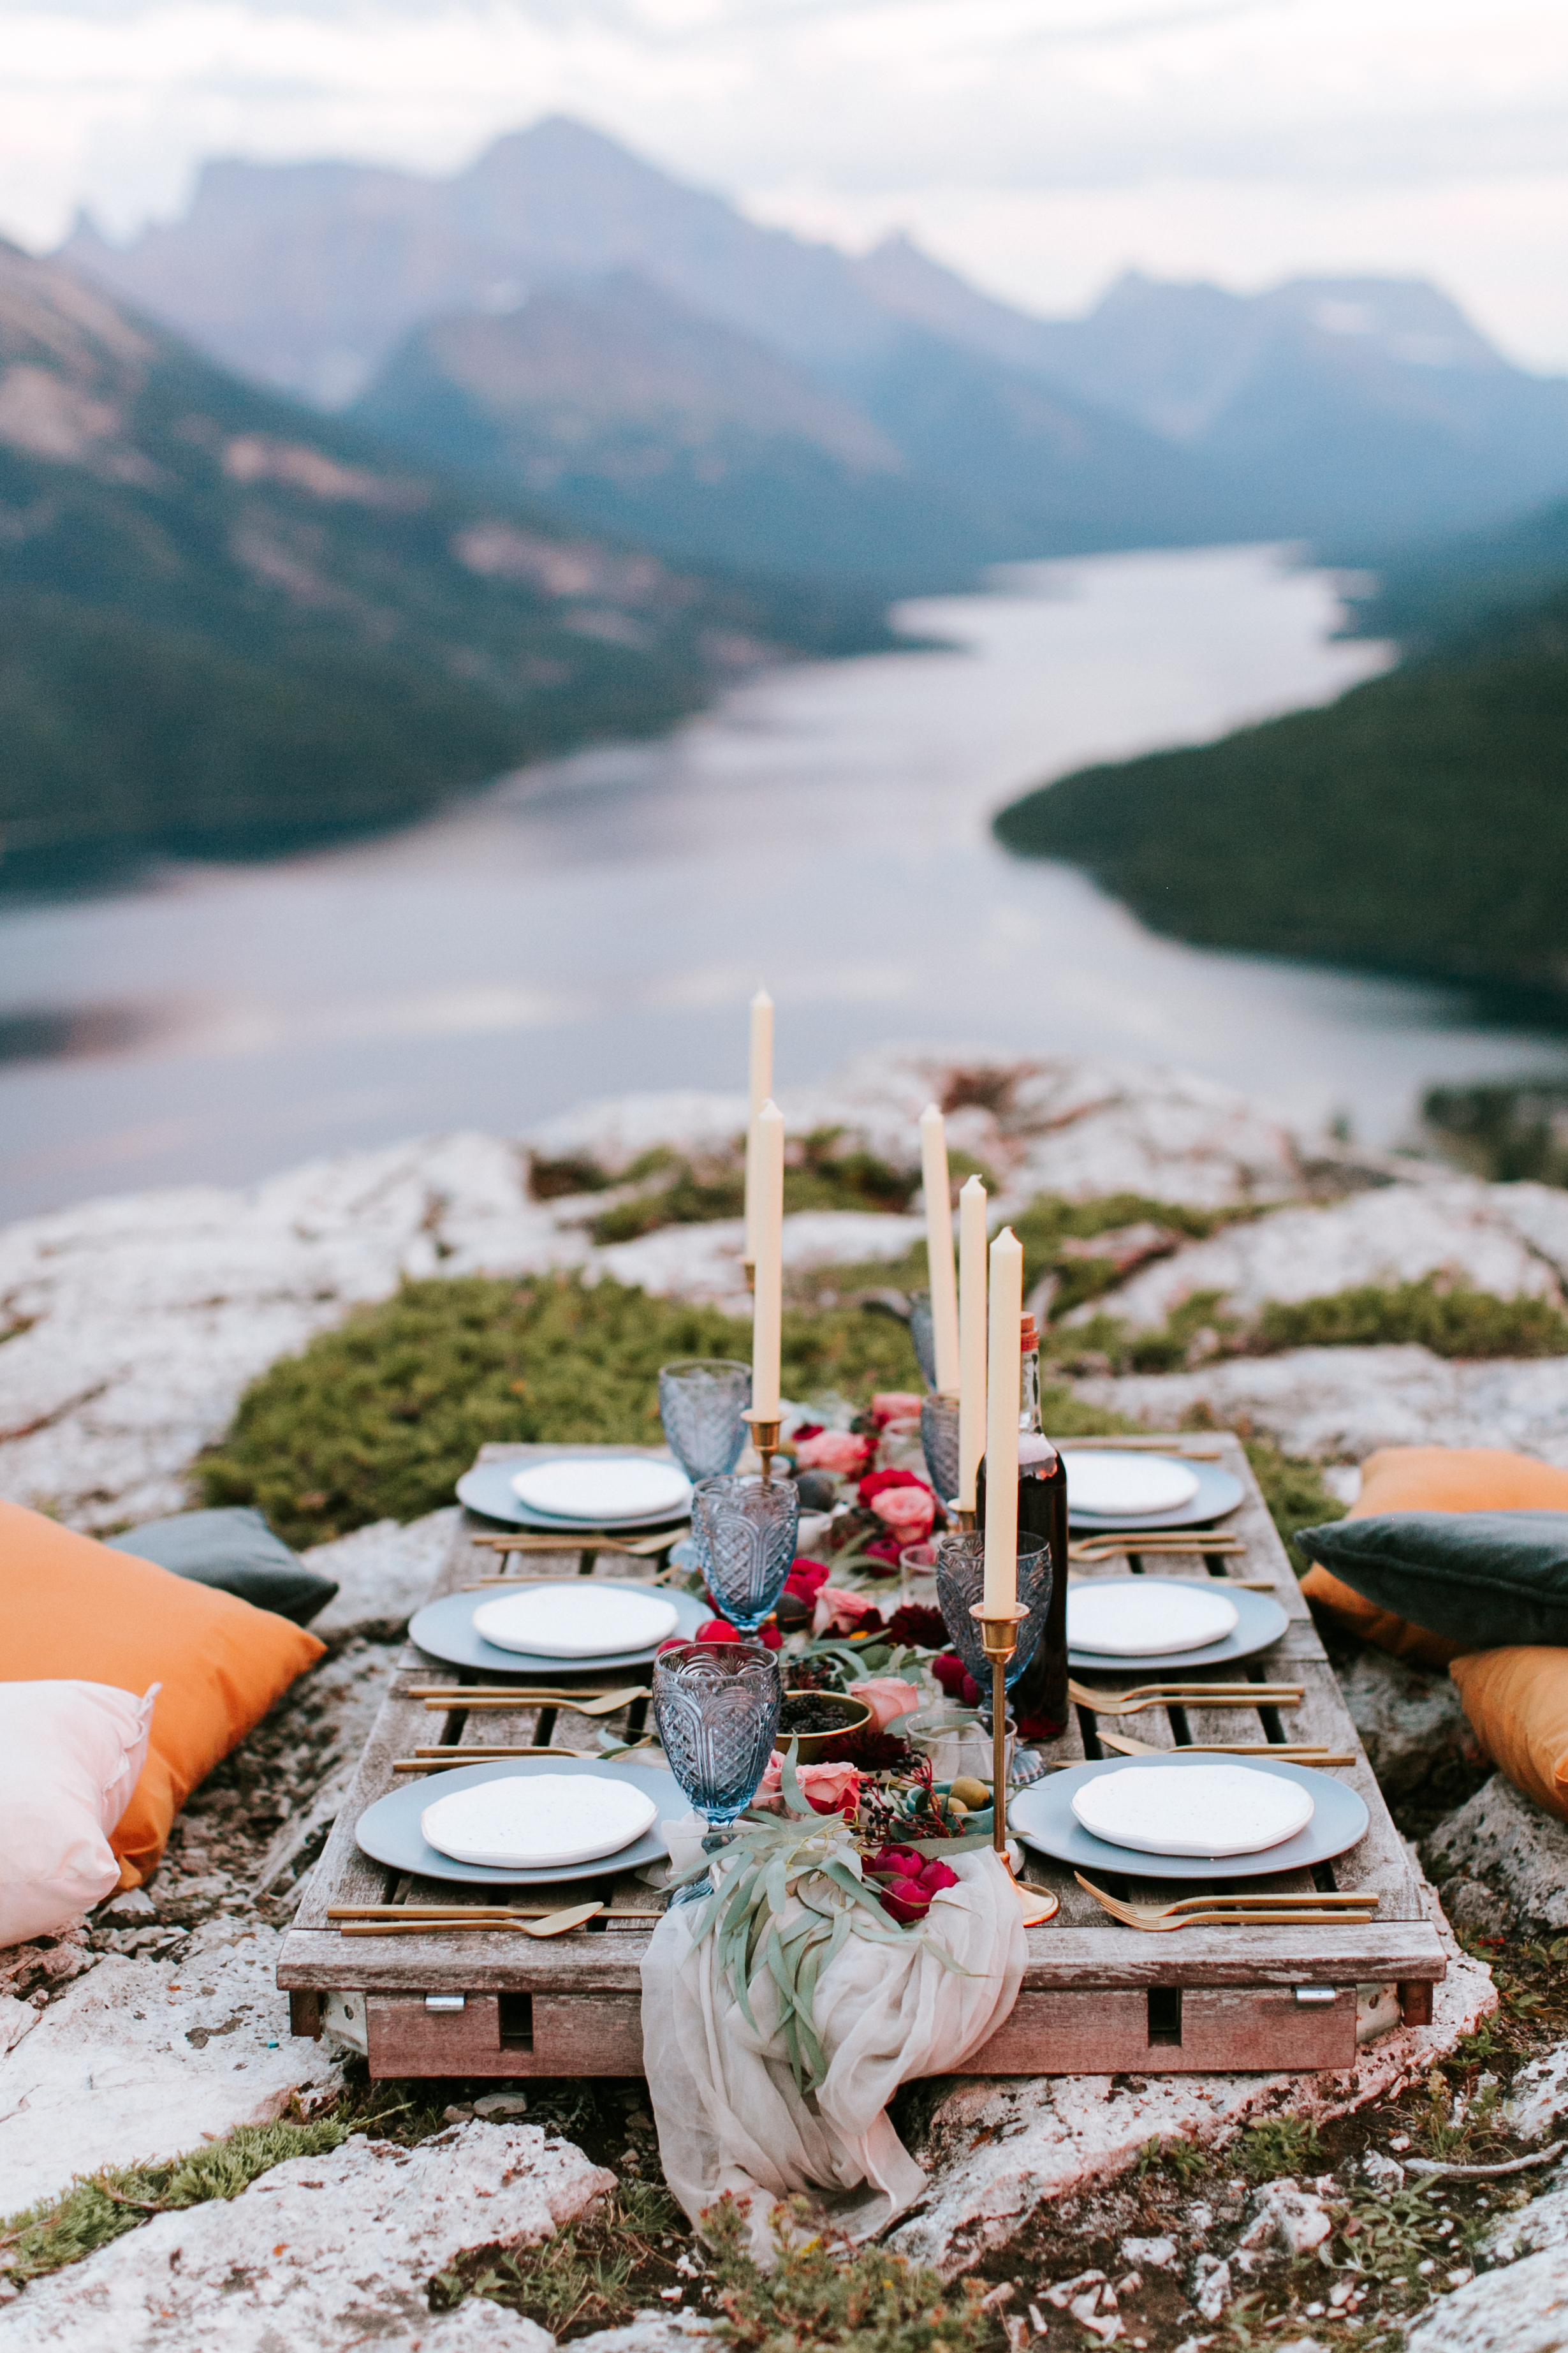 Waterton Elopement - FEATURED ON JUNEBUG WEDDINGS / FALL 2016Styling: Paperdoll + Photography: Genevieve Renee + Florals: Rebecca Dawn Design + Stationery: Art + Alexander + Cake: Pretty Sweet + Dress: Pearl & Dot + Hair and Makeup: Keri Bette + Rentals: Gathered Table Supply